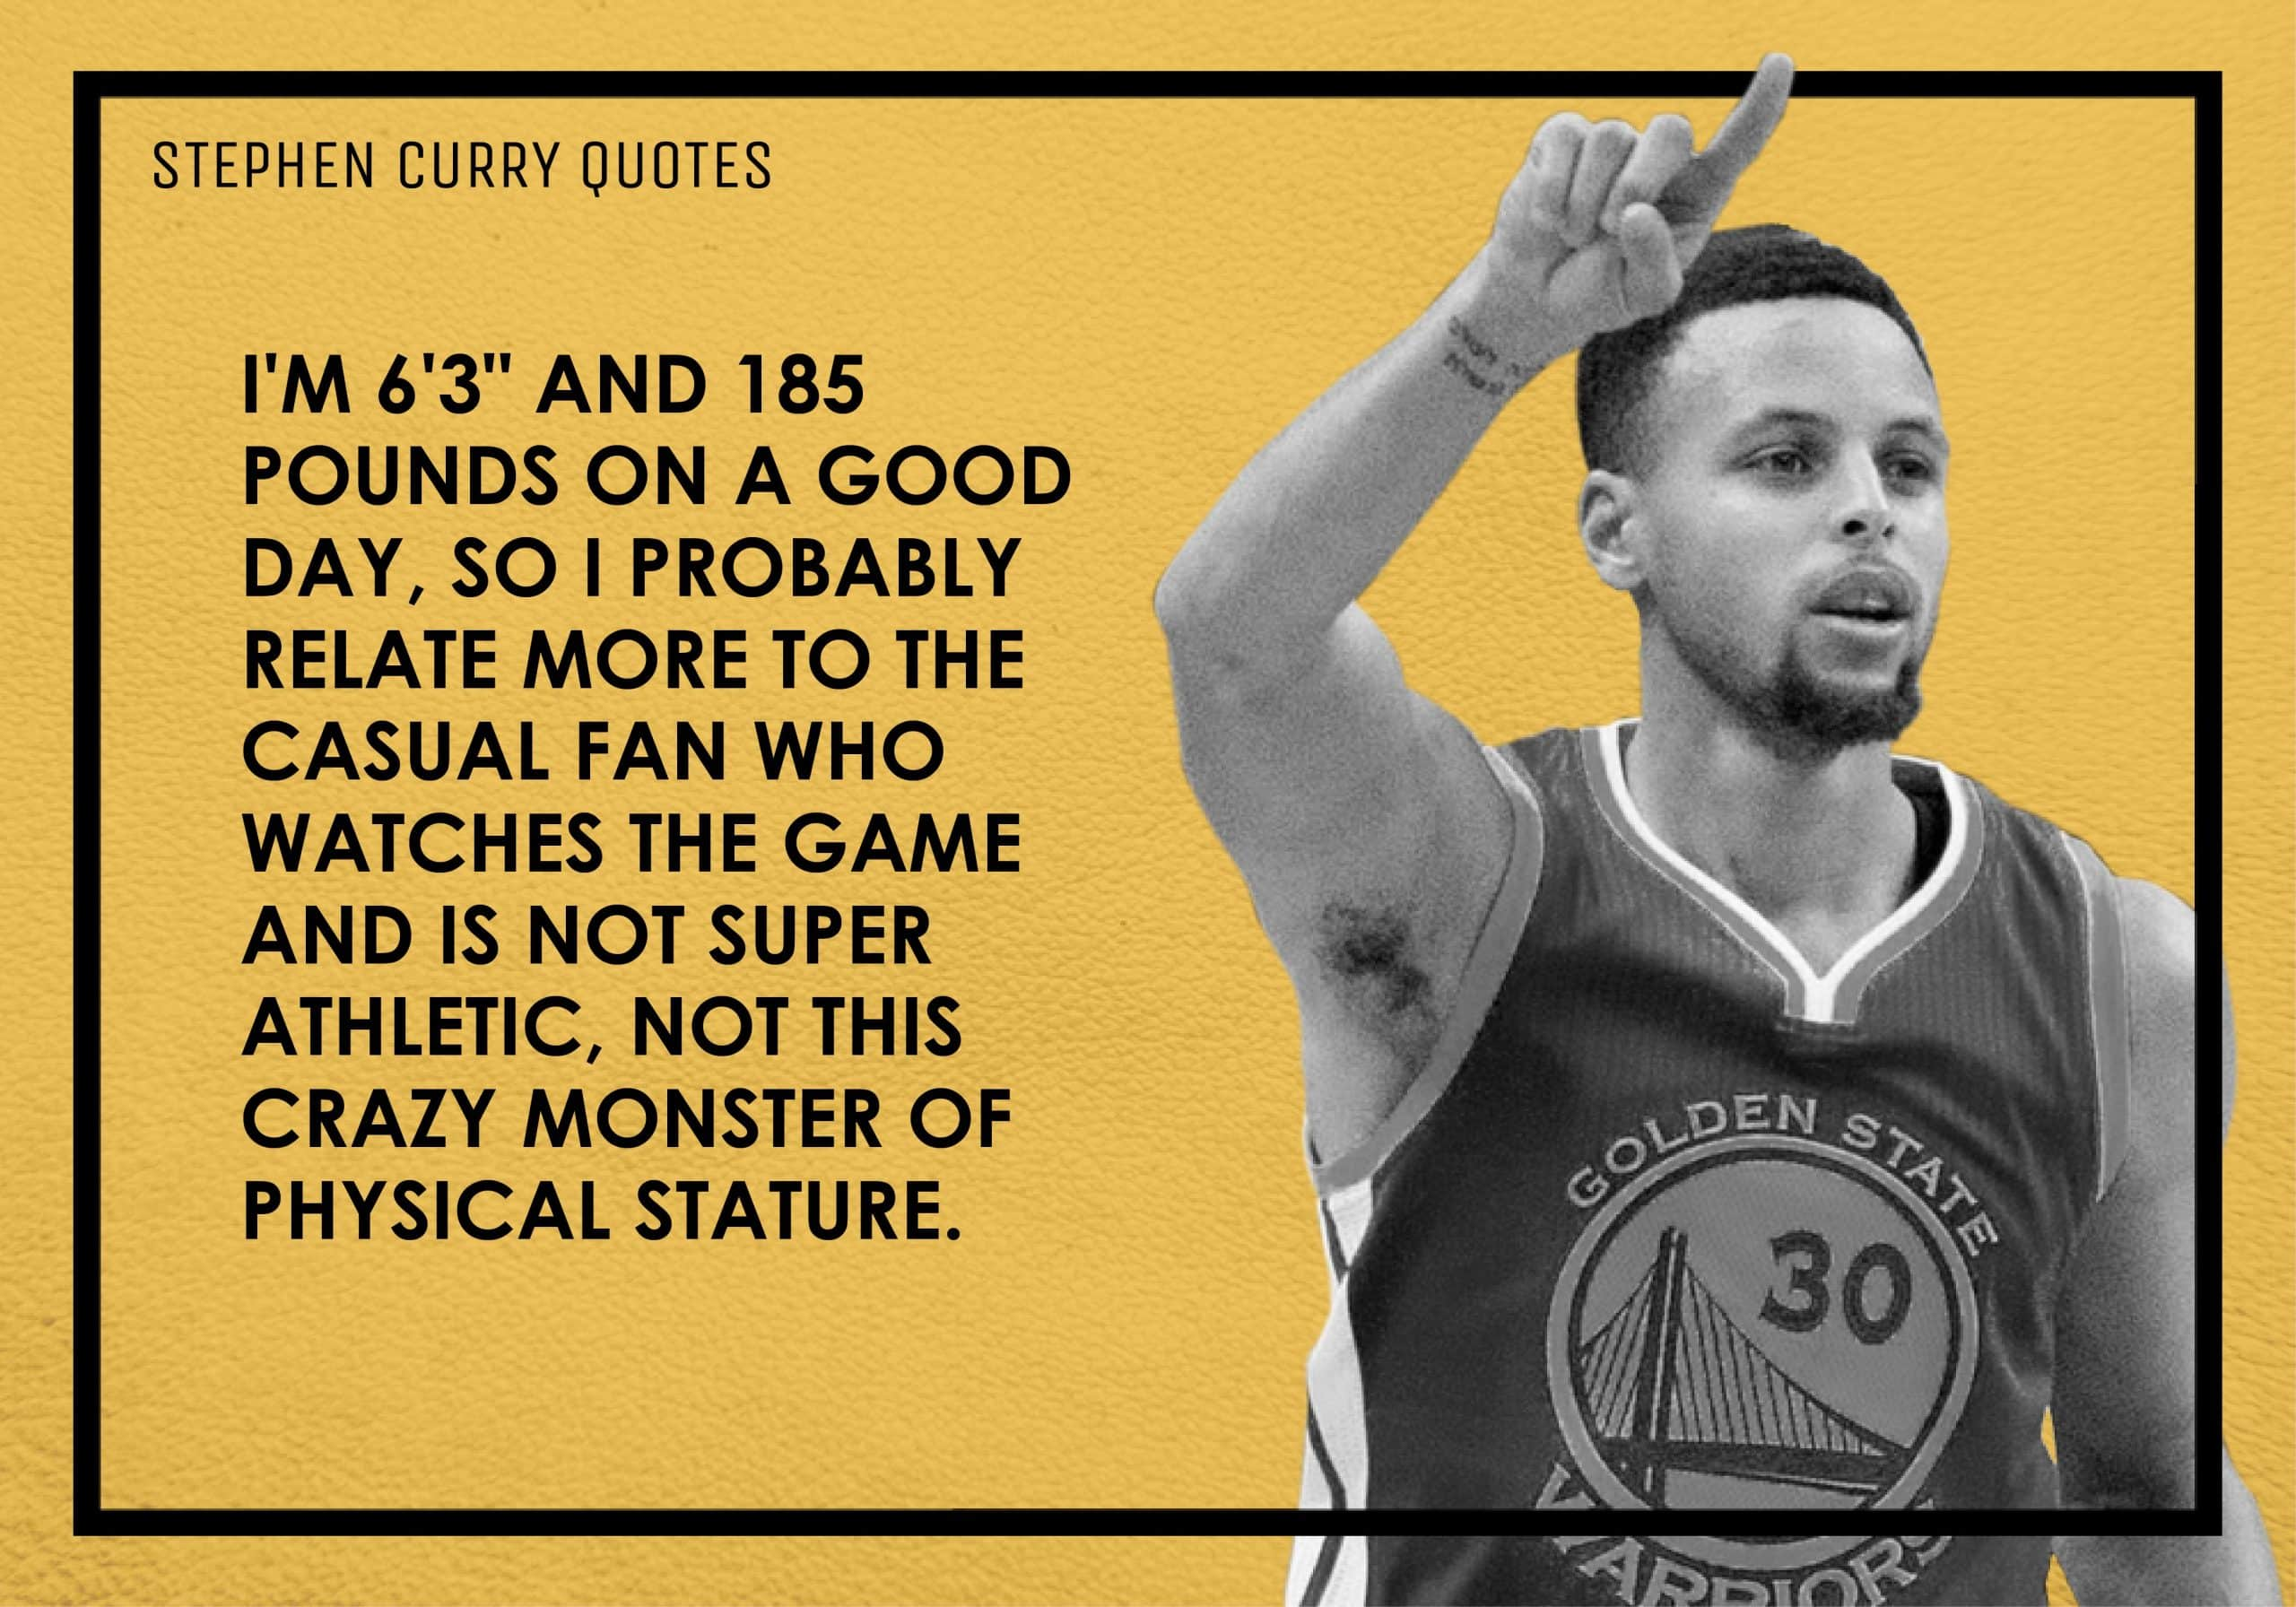 Stephen Curry Quotes (7)